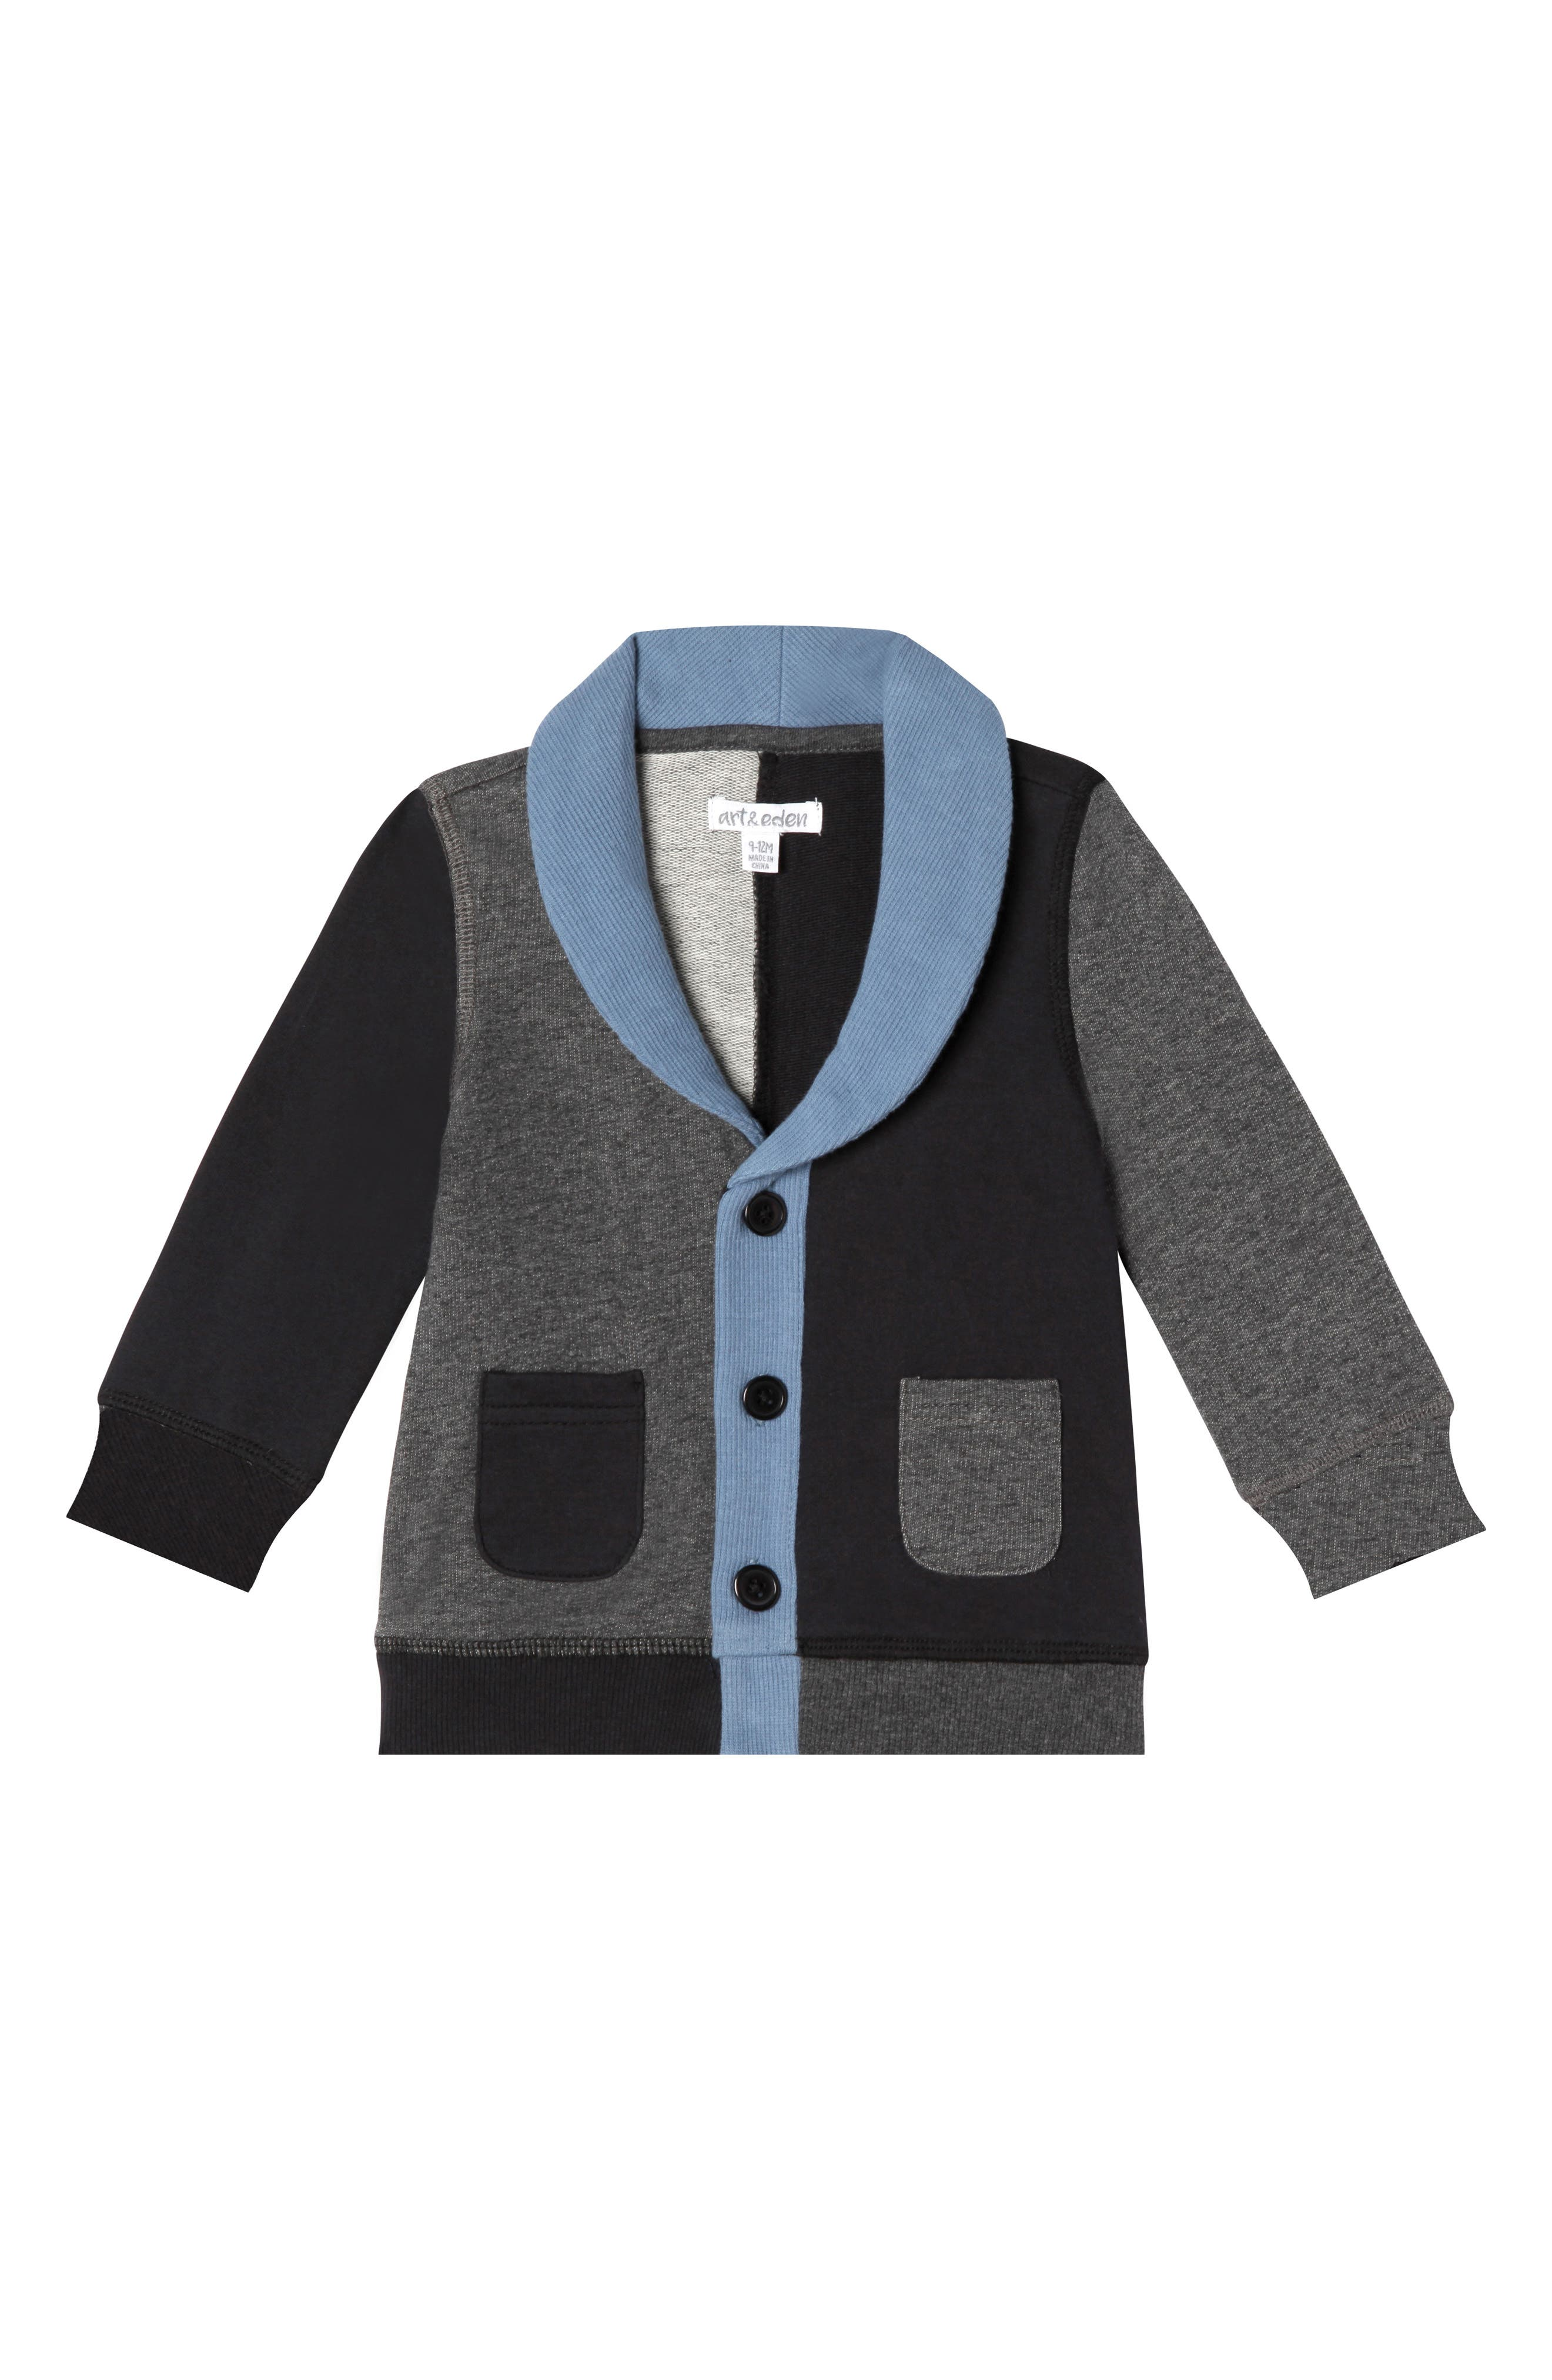 Boys Art  Eden Pierre Organic Cotton Cardigan Size 5  Black